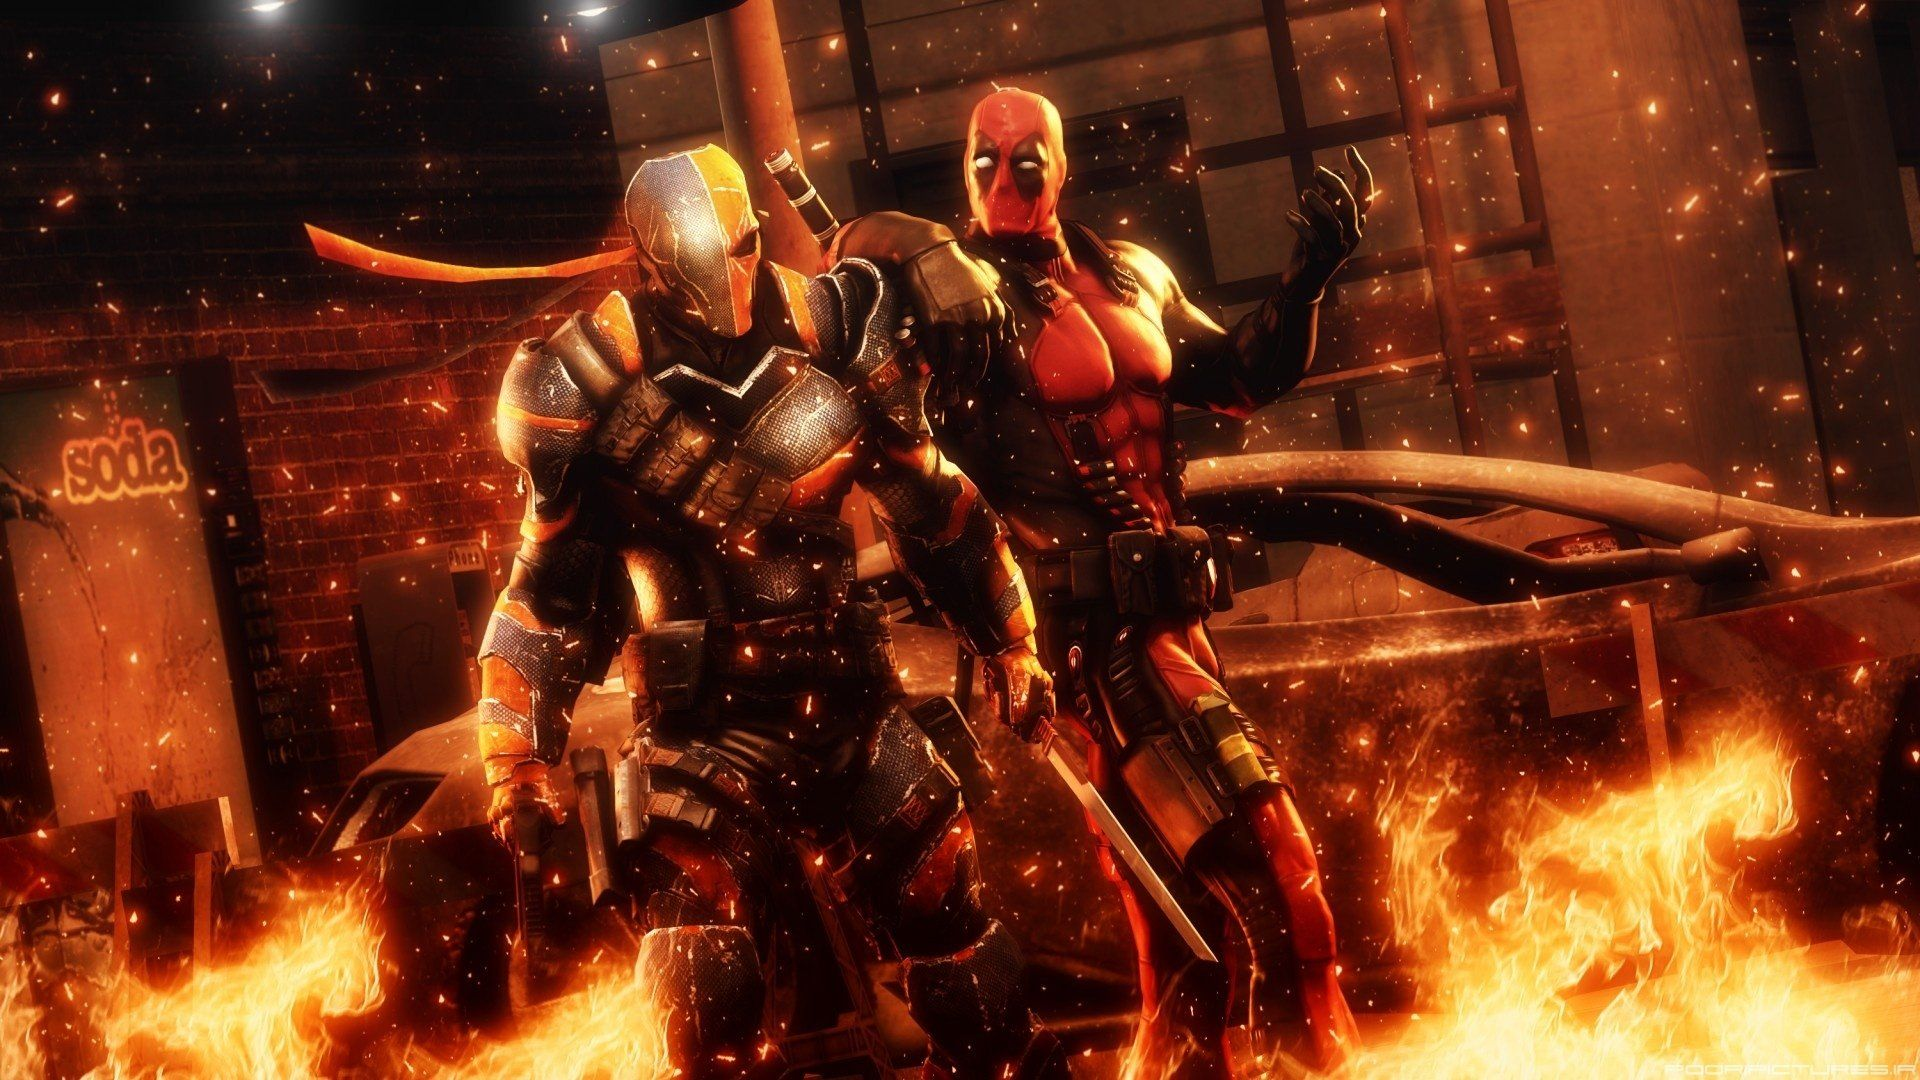 1920x1080 Deadpool Vs Deathstroke Full HD Wallpaper And Background Image